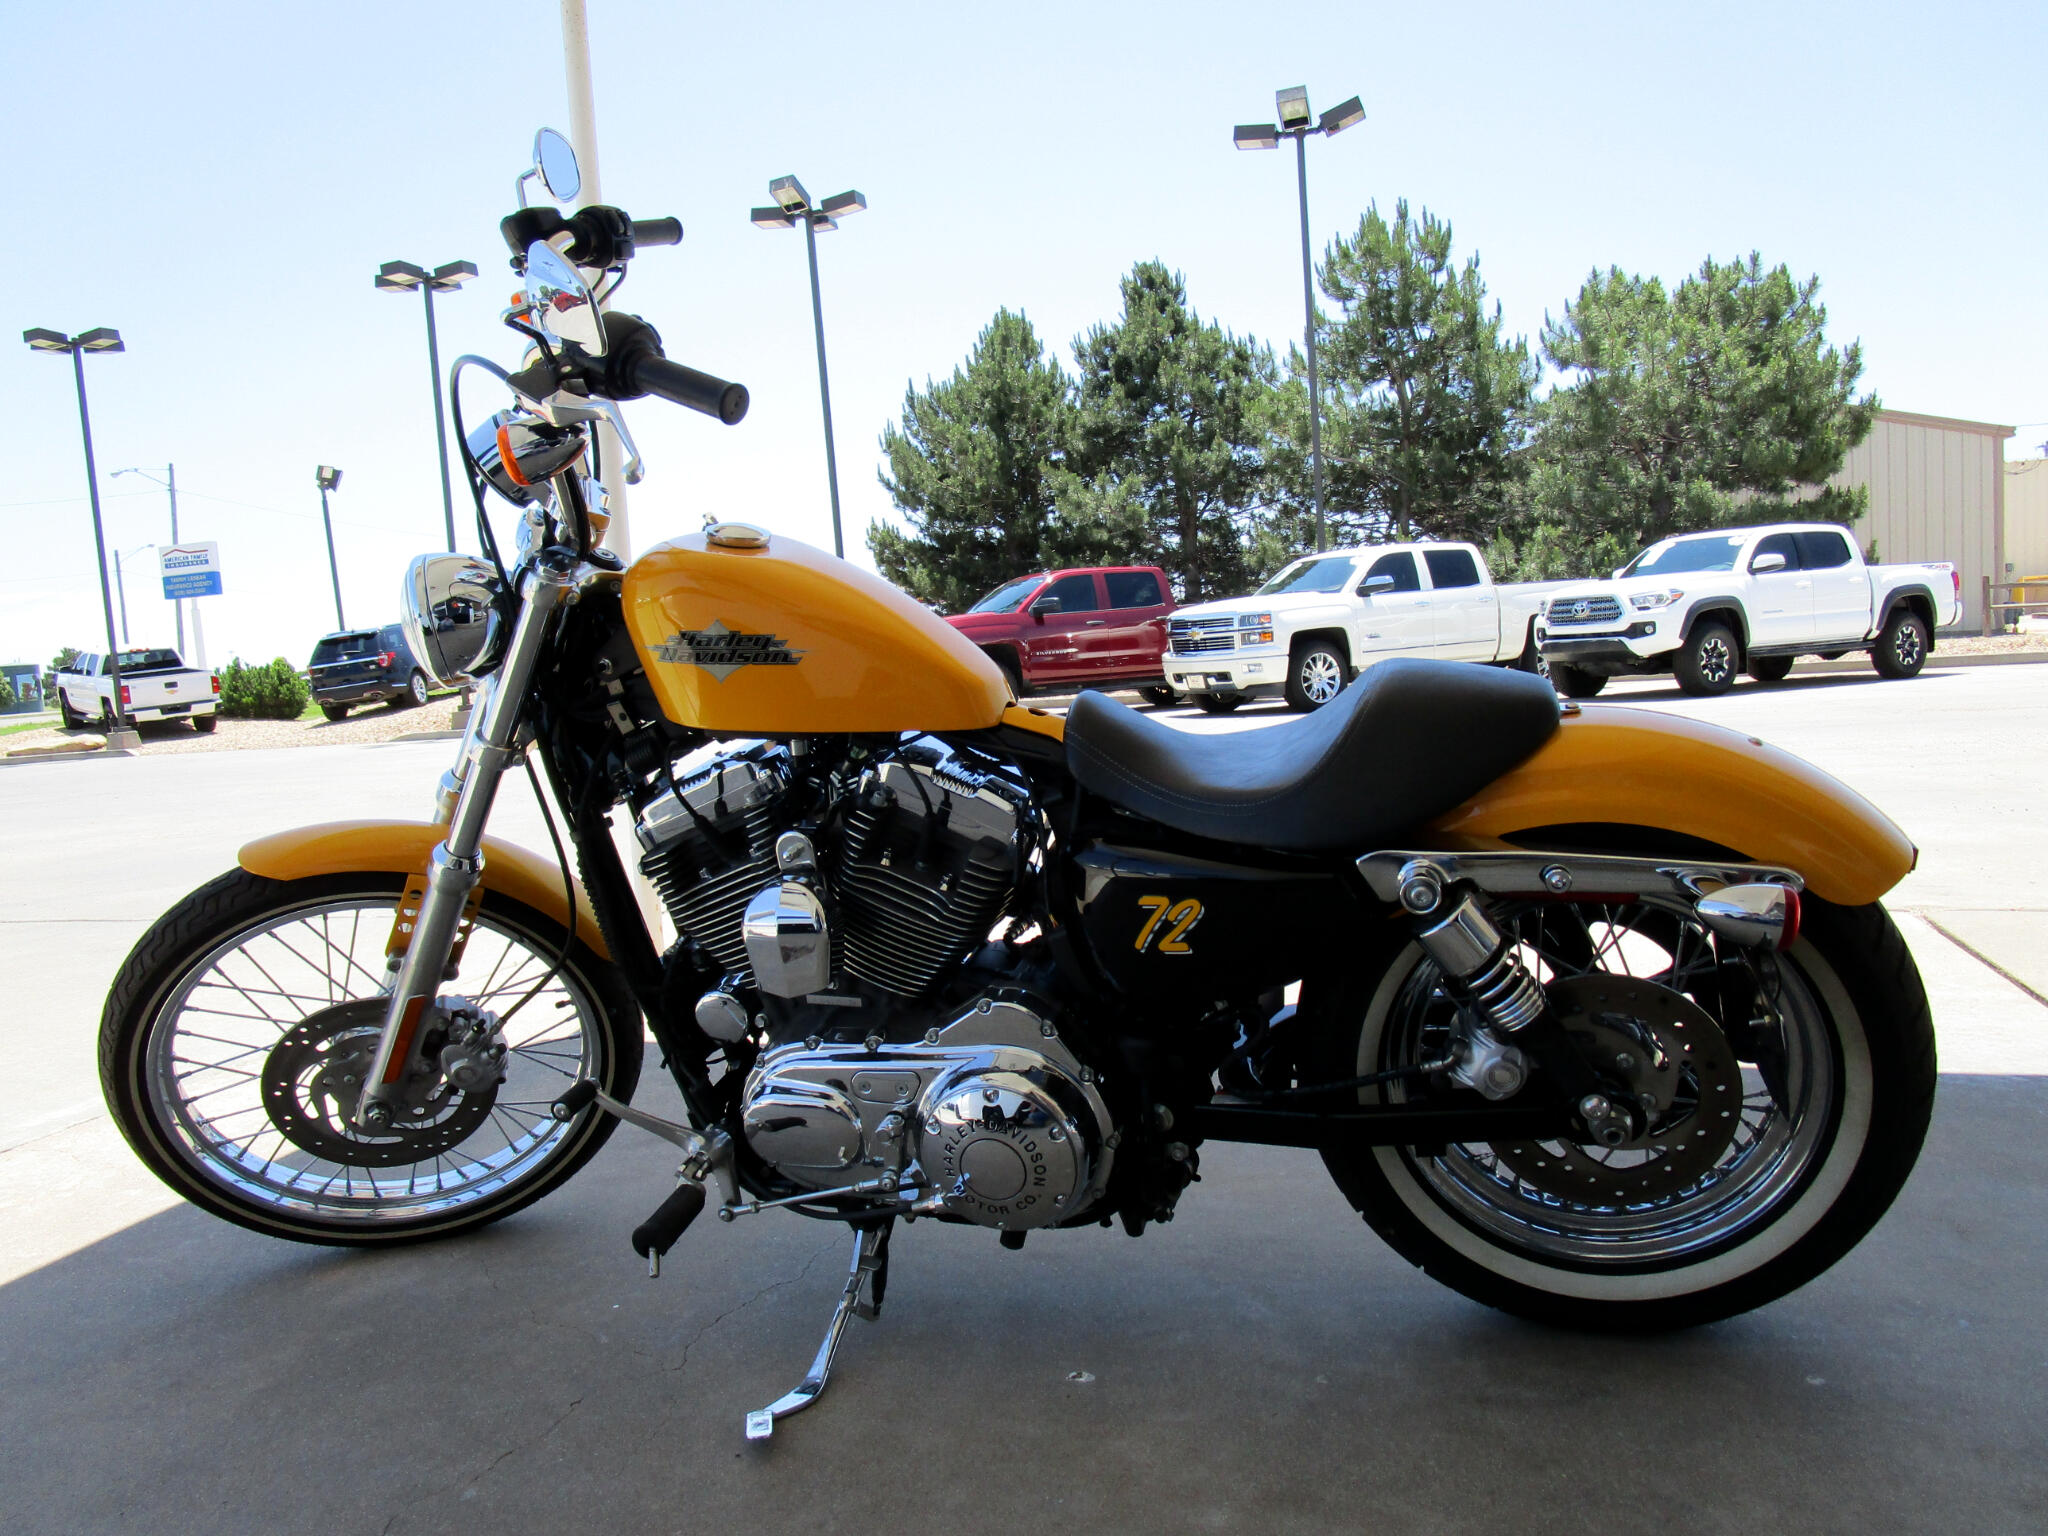 Used 2013 Harley Davidson Xl 1200v 72 For Sale In Liberal Ks 67901 Elite Motors